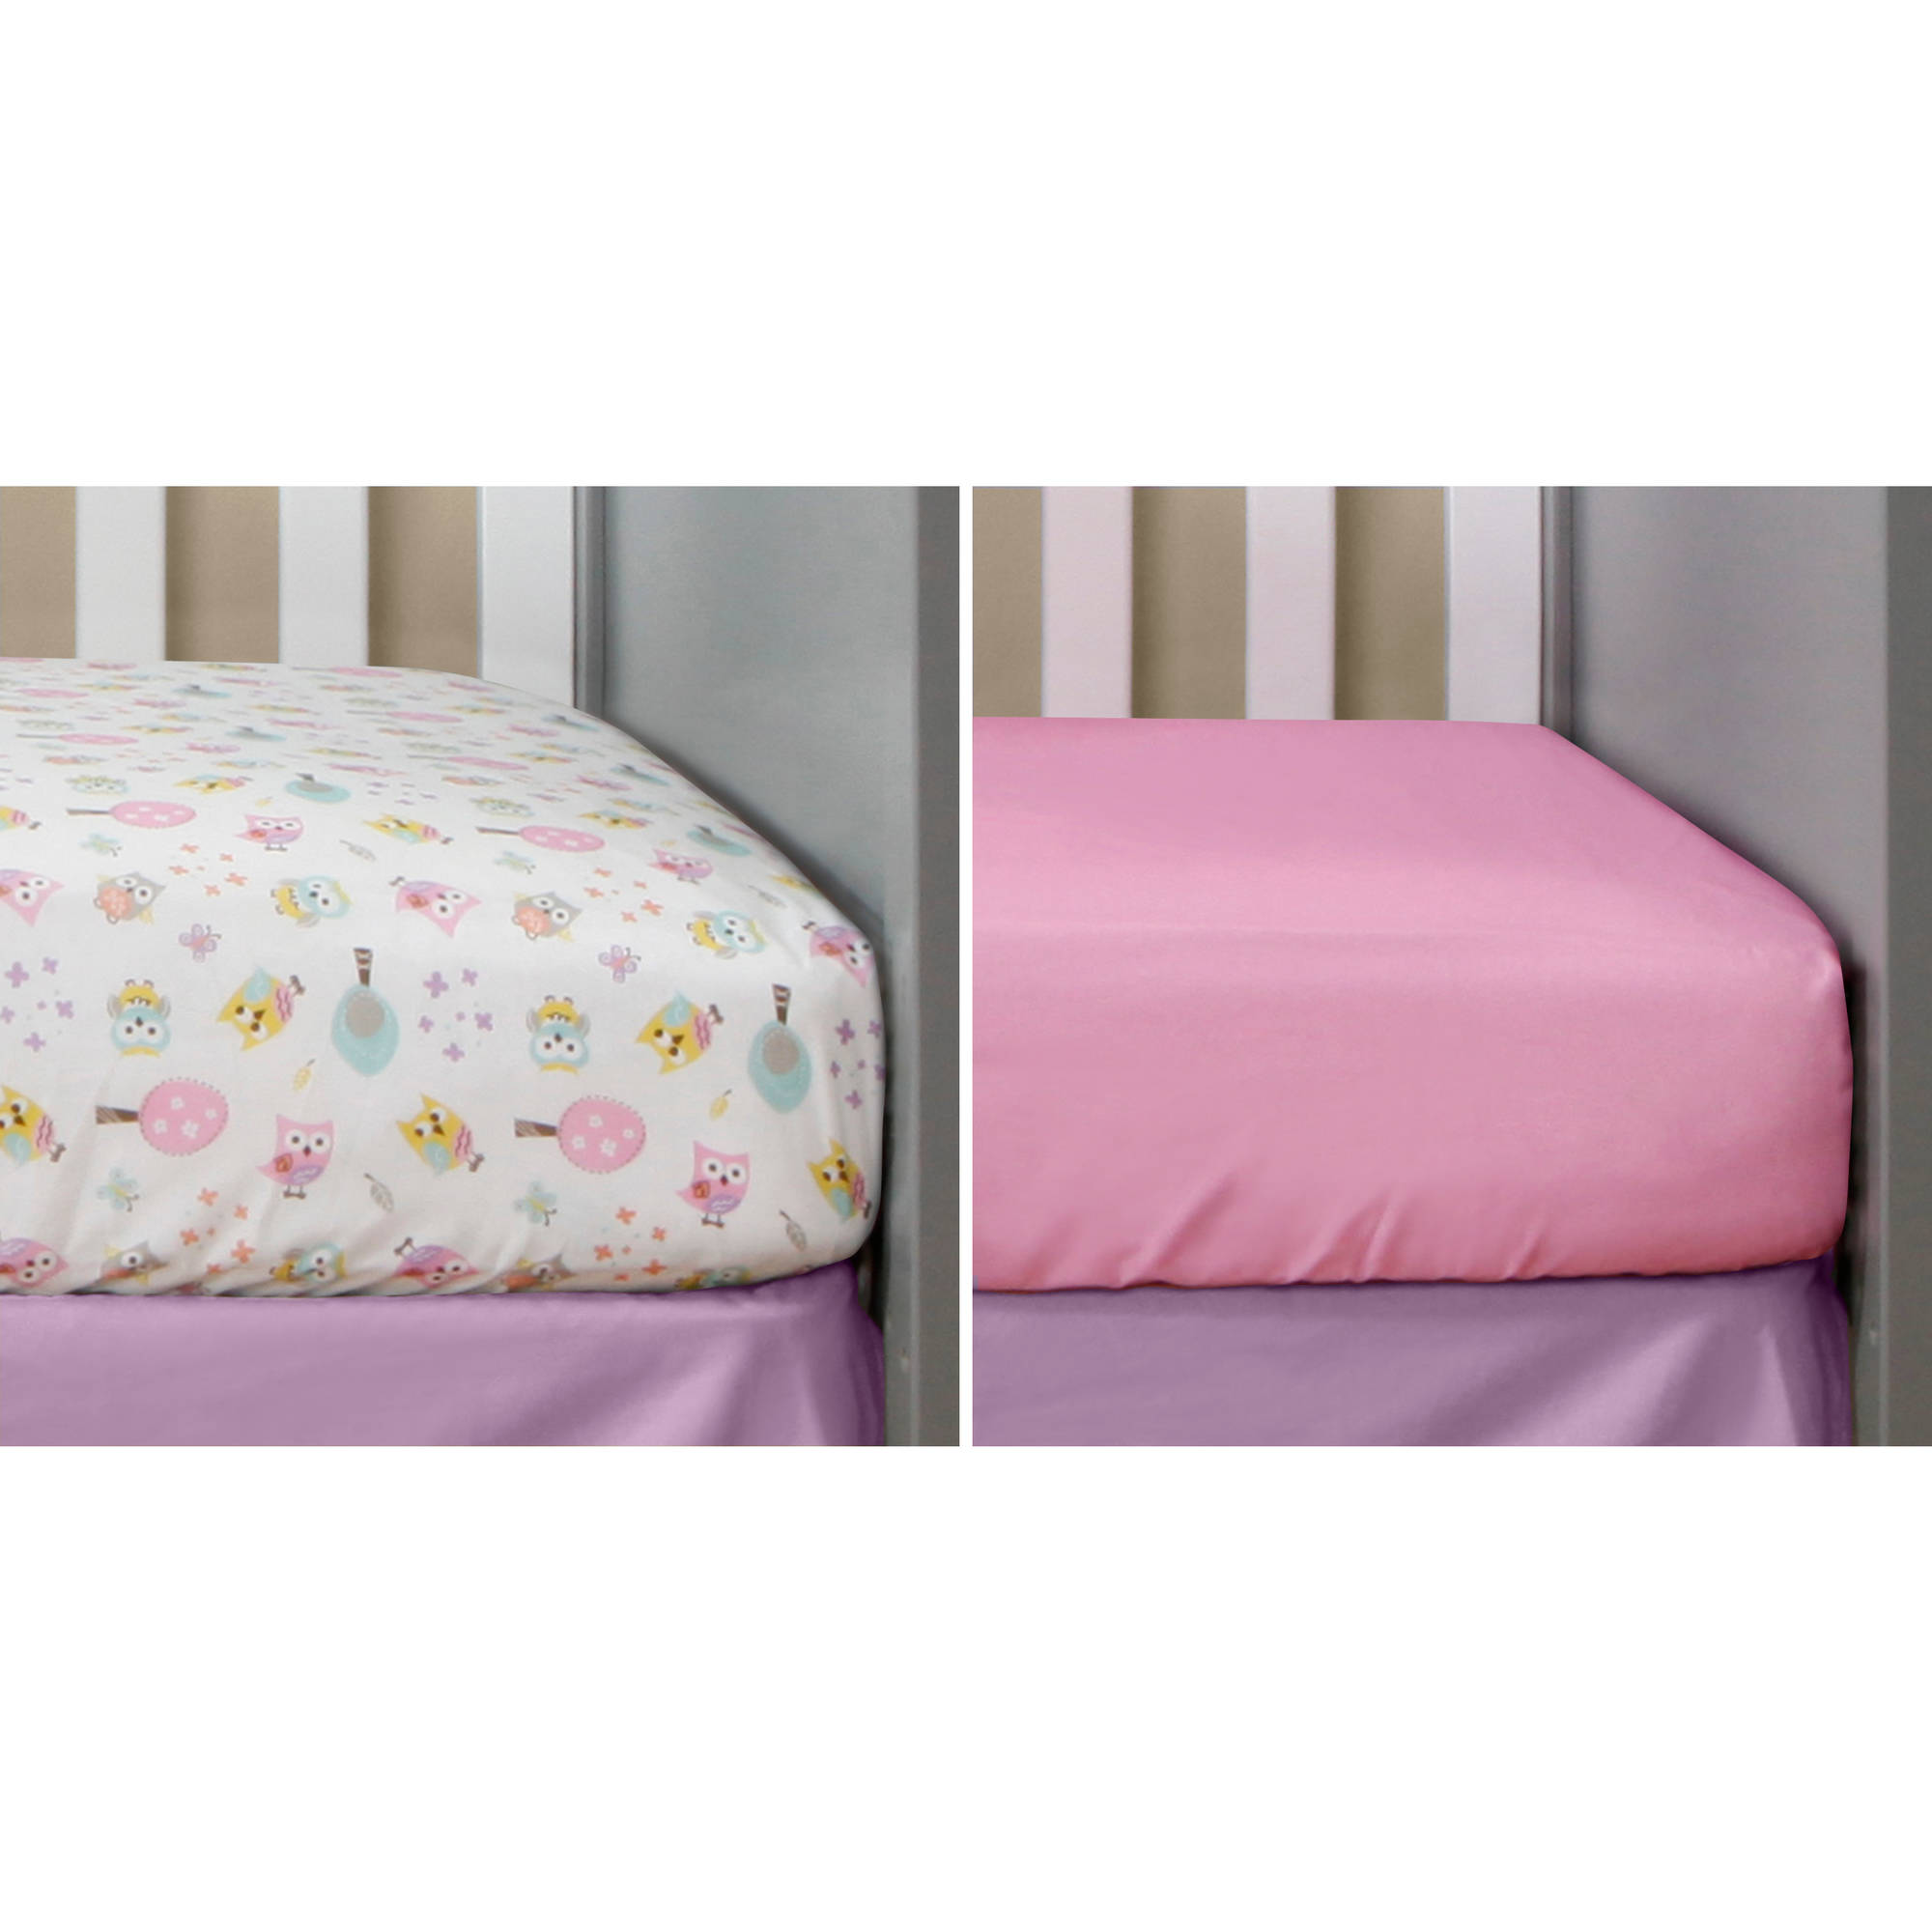 Bananafish Studio Sweet Owl Girl Set of 2 Crib Sheets, Zigzag/Pink Geo Print